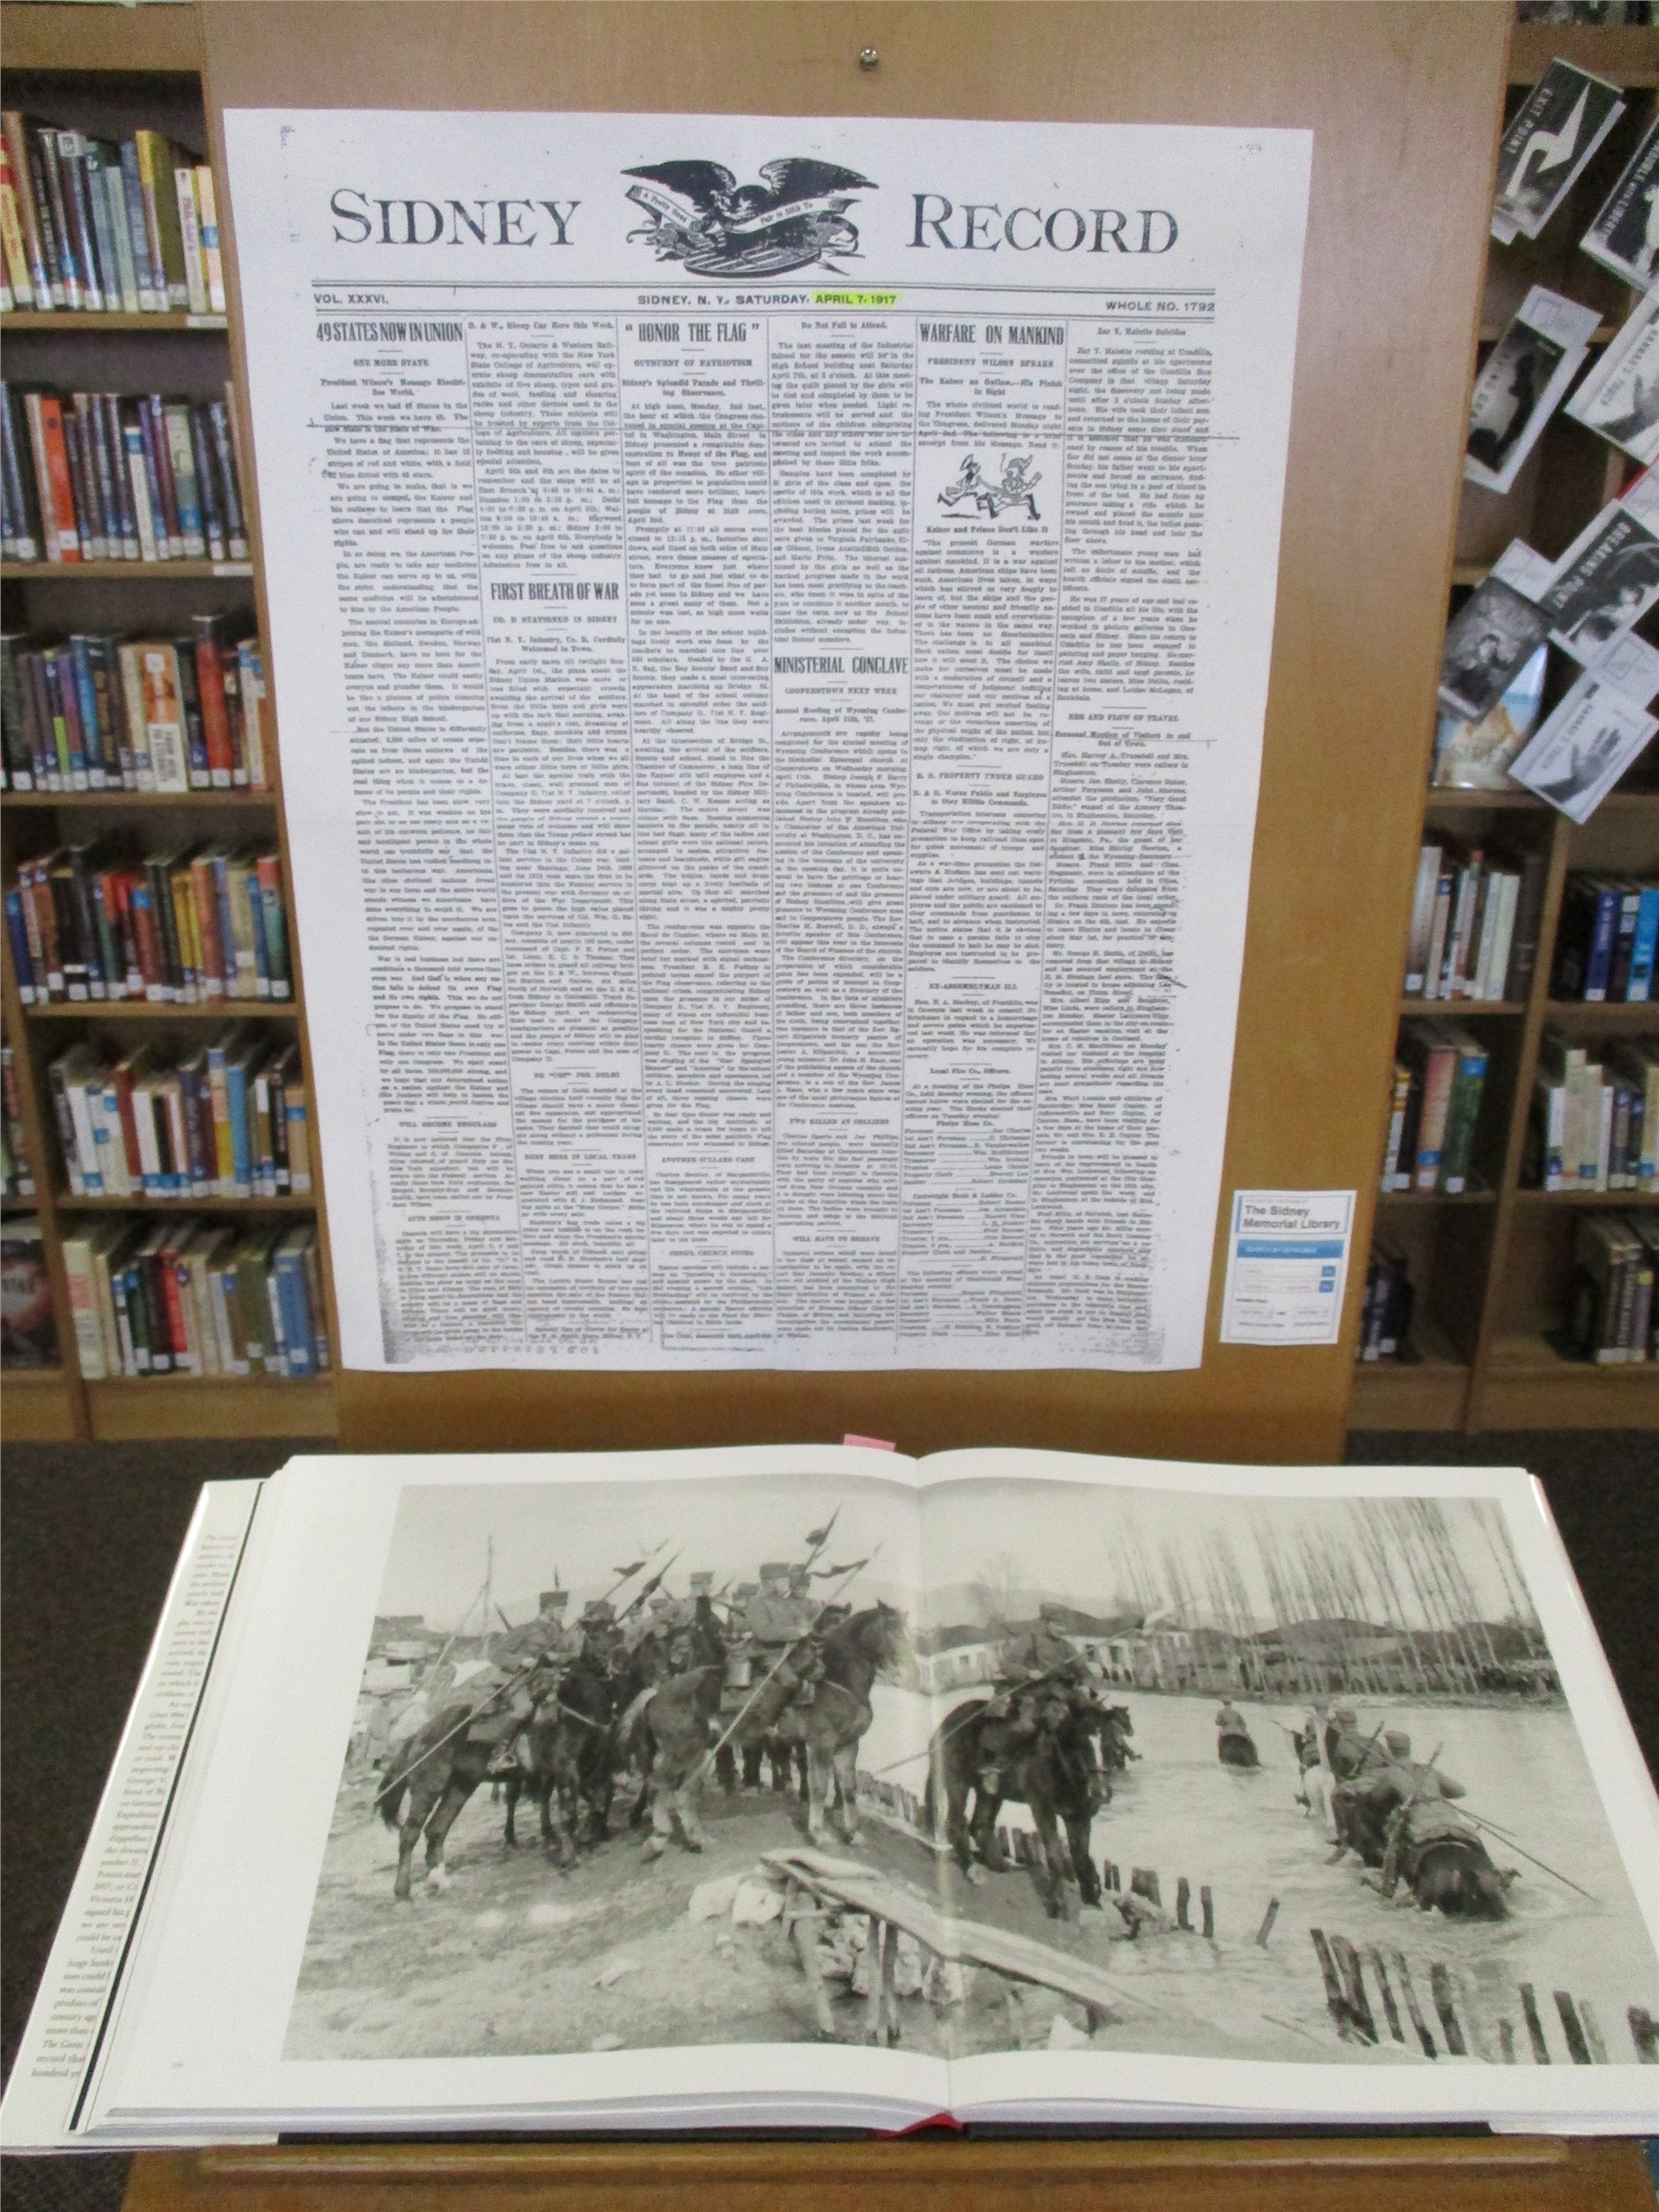 World War I exhibit: image of Sidney Record newspaper from WWI.